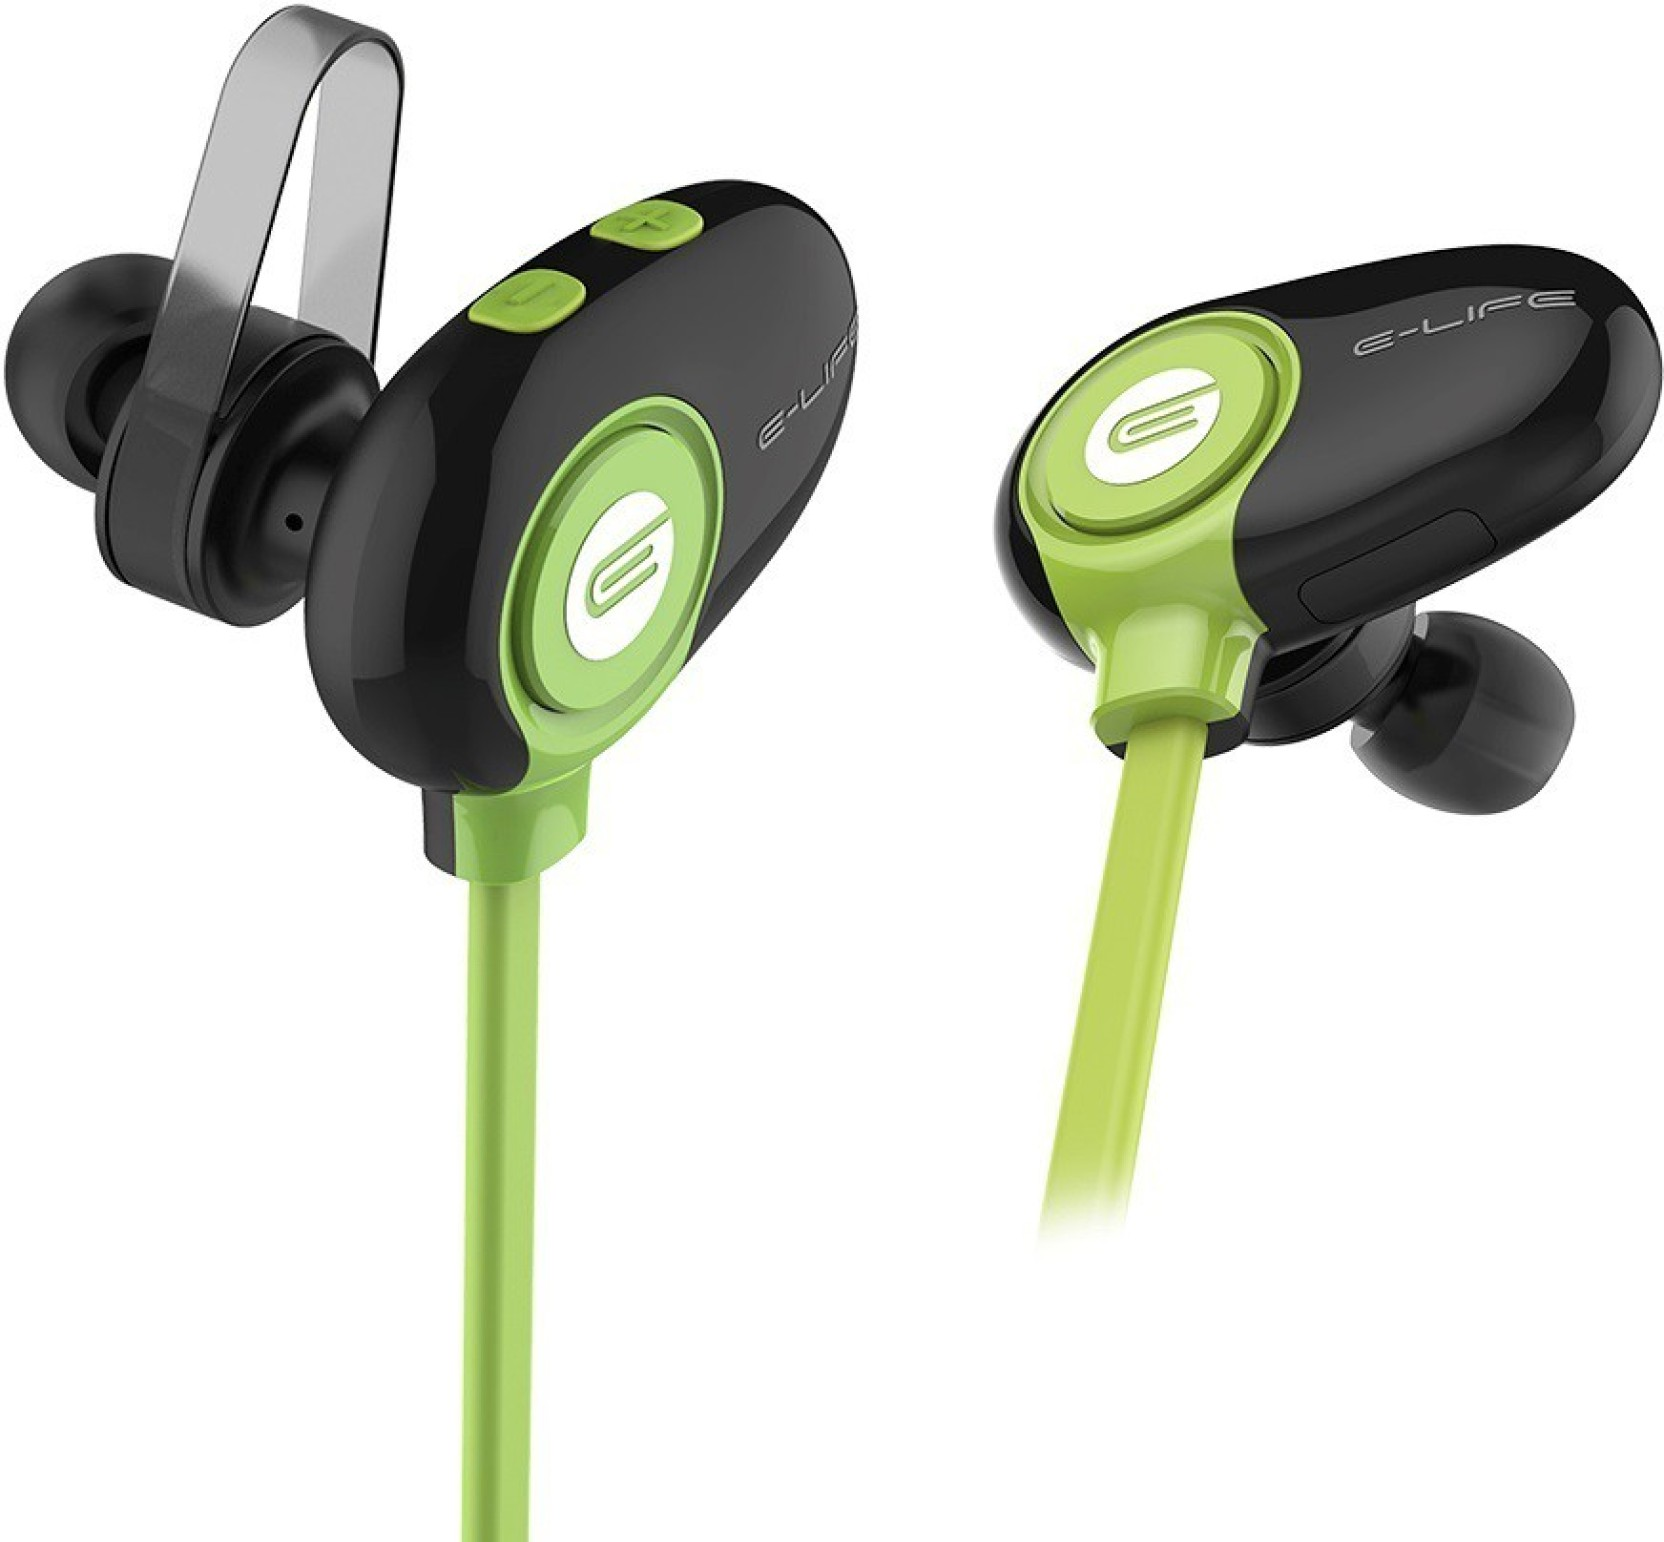 Qkz Qg9 Bluetooth Headset With Mic Price In India Buy Dm7 Add To Cart